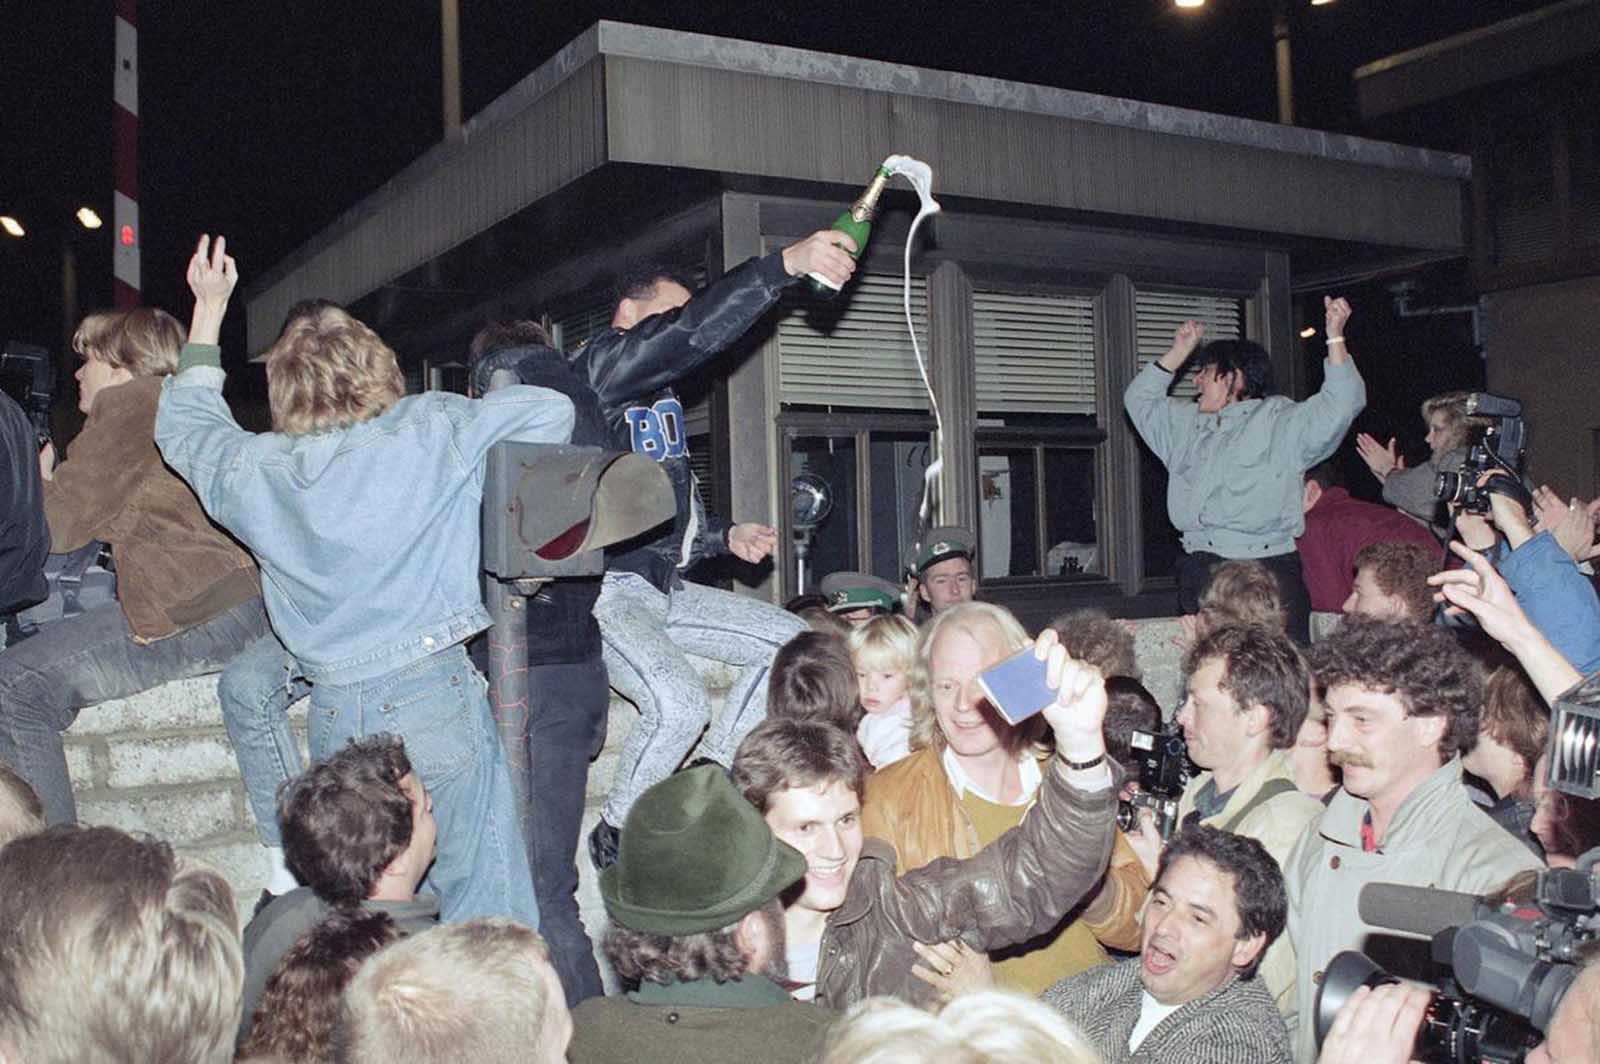 East and West Berliners mingle as they celebrate in front of a control station on East Berlin territory during the opening of the borders to the West following the announcement by the East German government that the border to the West would open. Photo taken in the early hours of November 10, 1989.